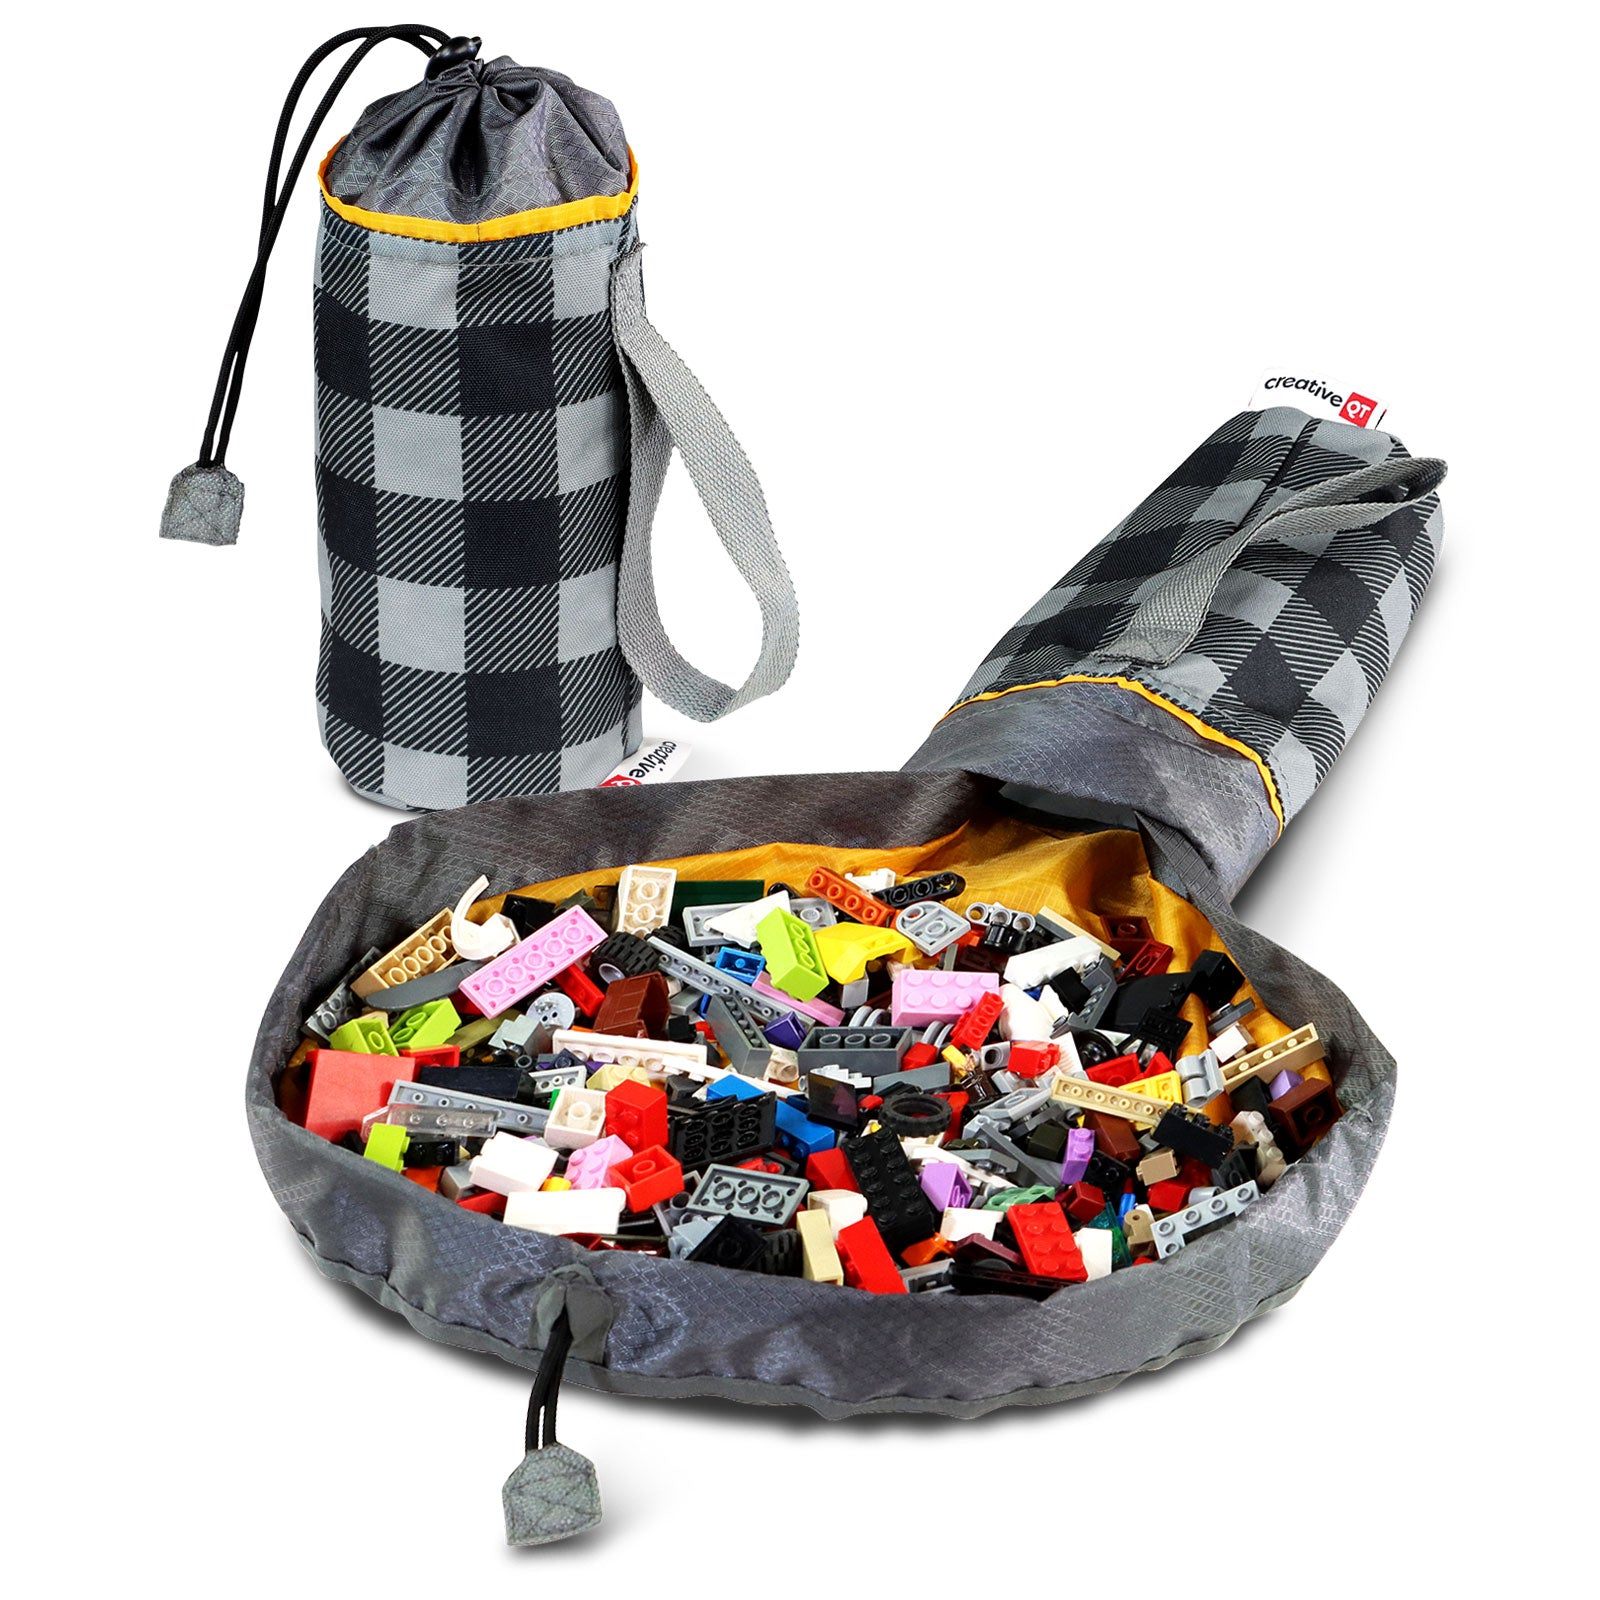 Mini SlideAway® Storage Bag and Play Mat